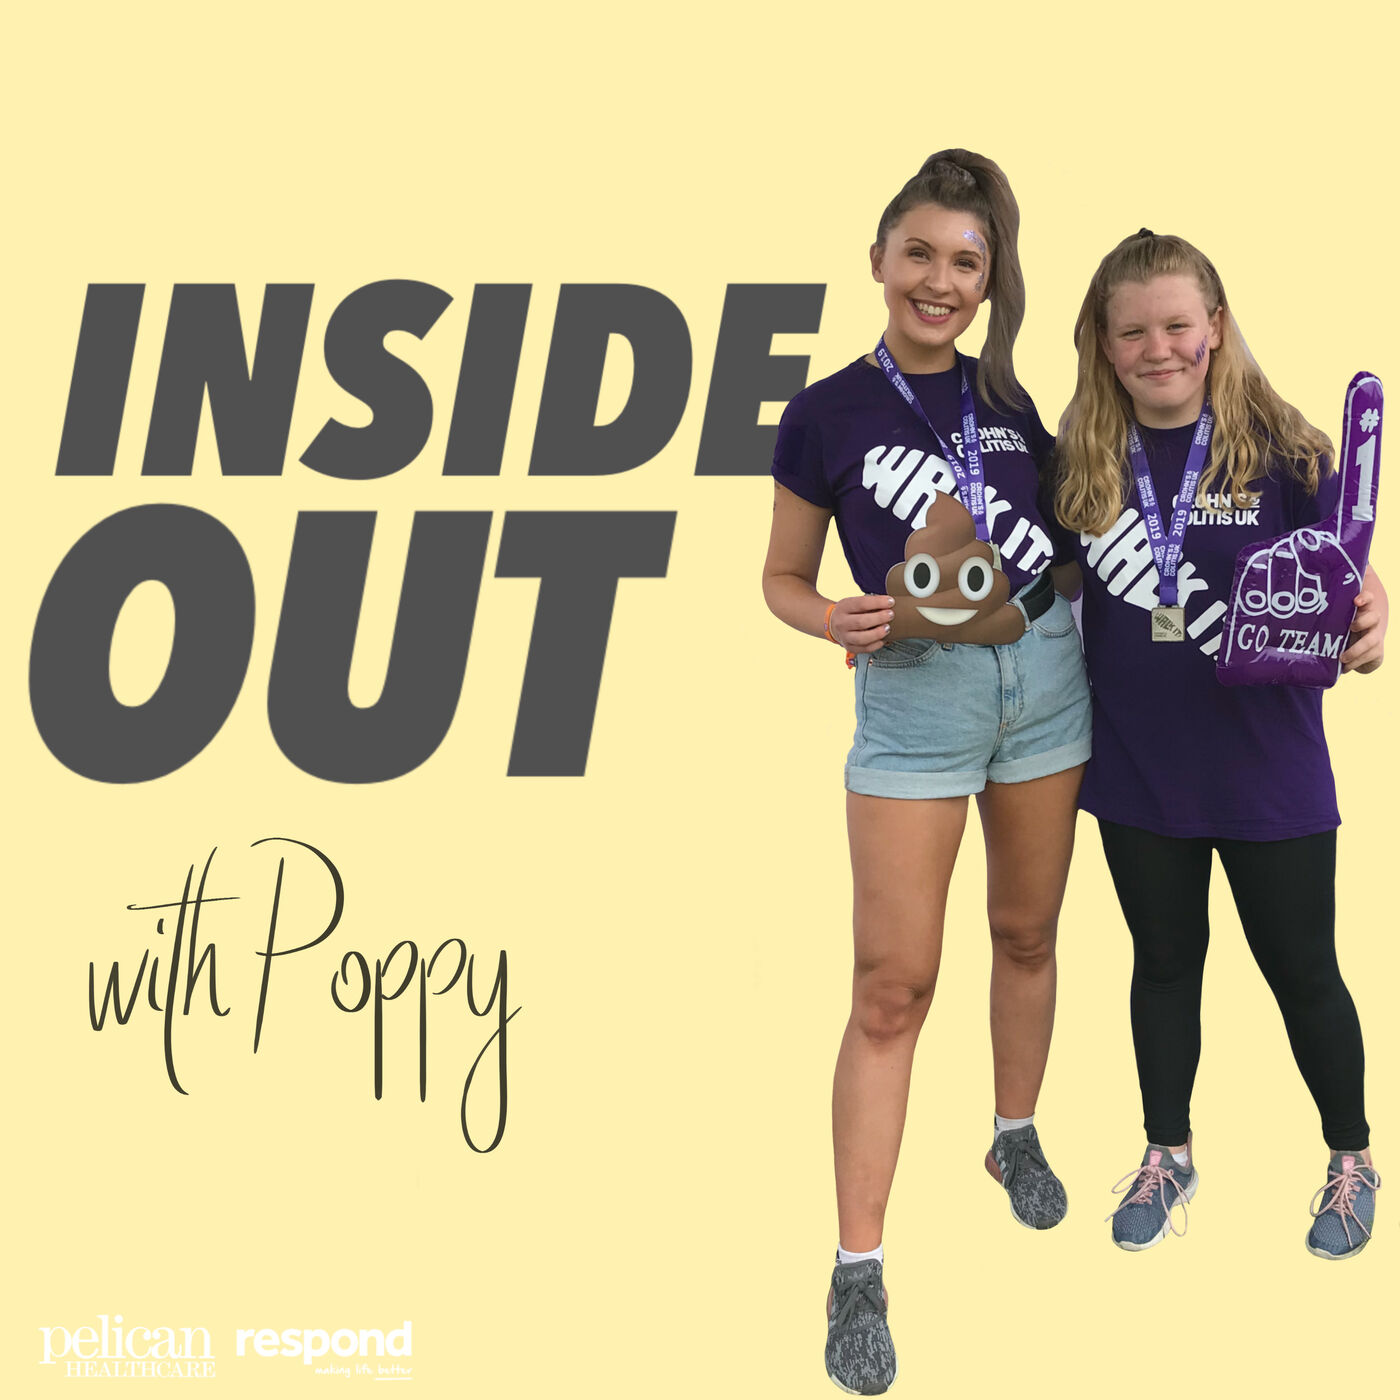 Inside Out with Poppy; Chronic Illness & Surgery - A Younger Sibling's Perspective